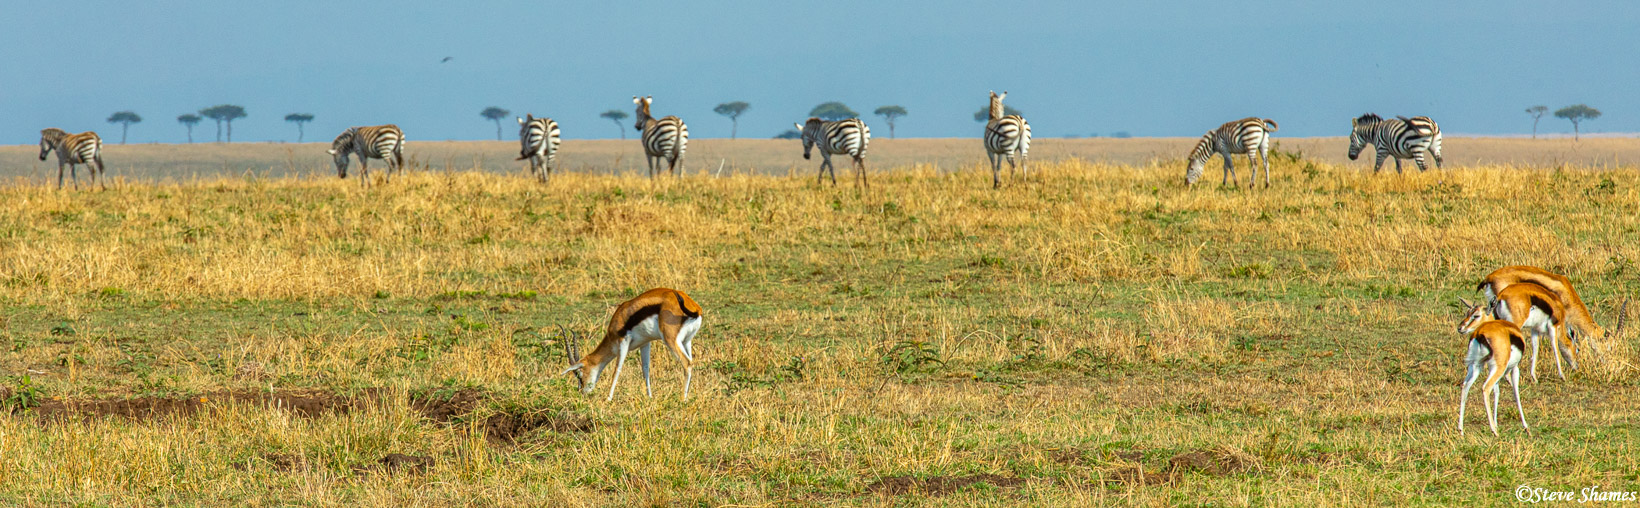 """This is a very """"Serengeti plains scene"""" with the Thompsons gazelles, the zebras, and the flat top Acacia trees in the distance..."""